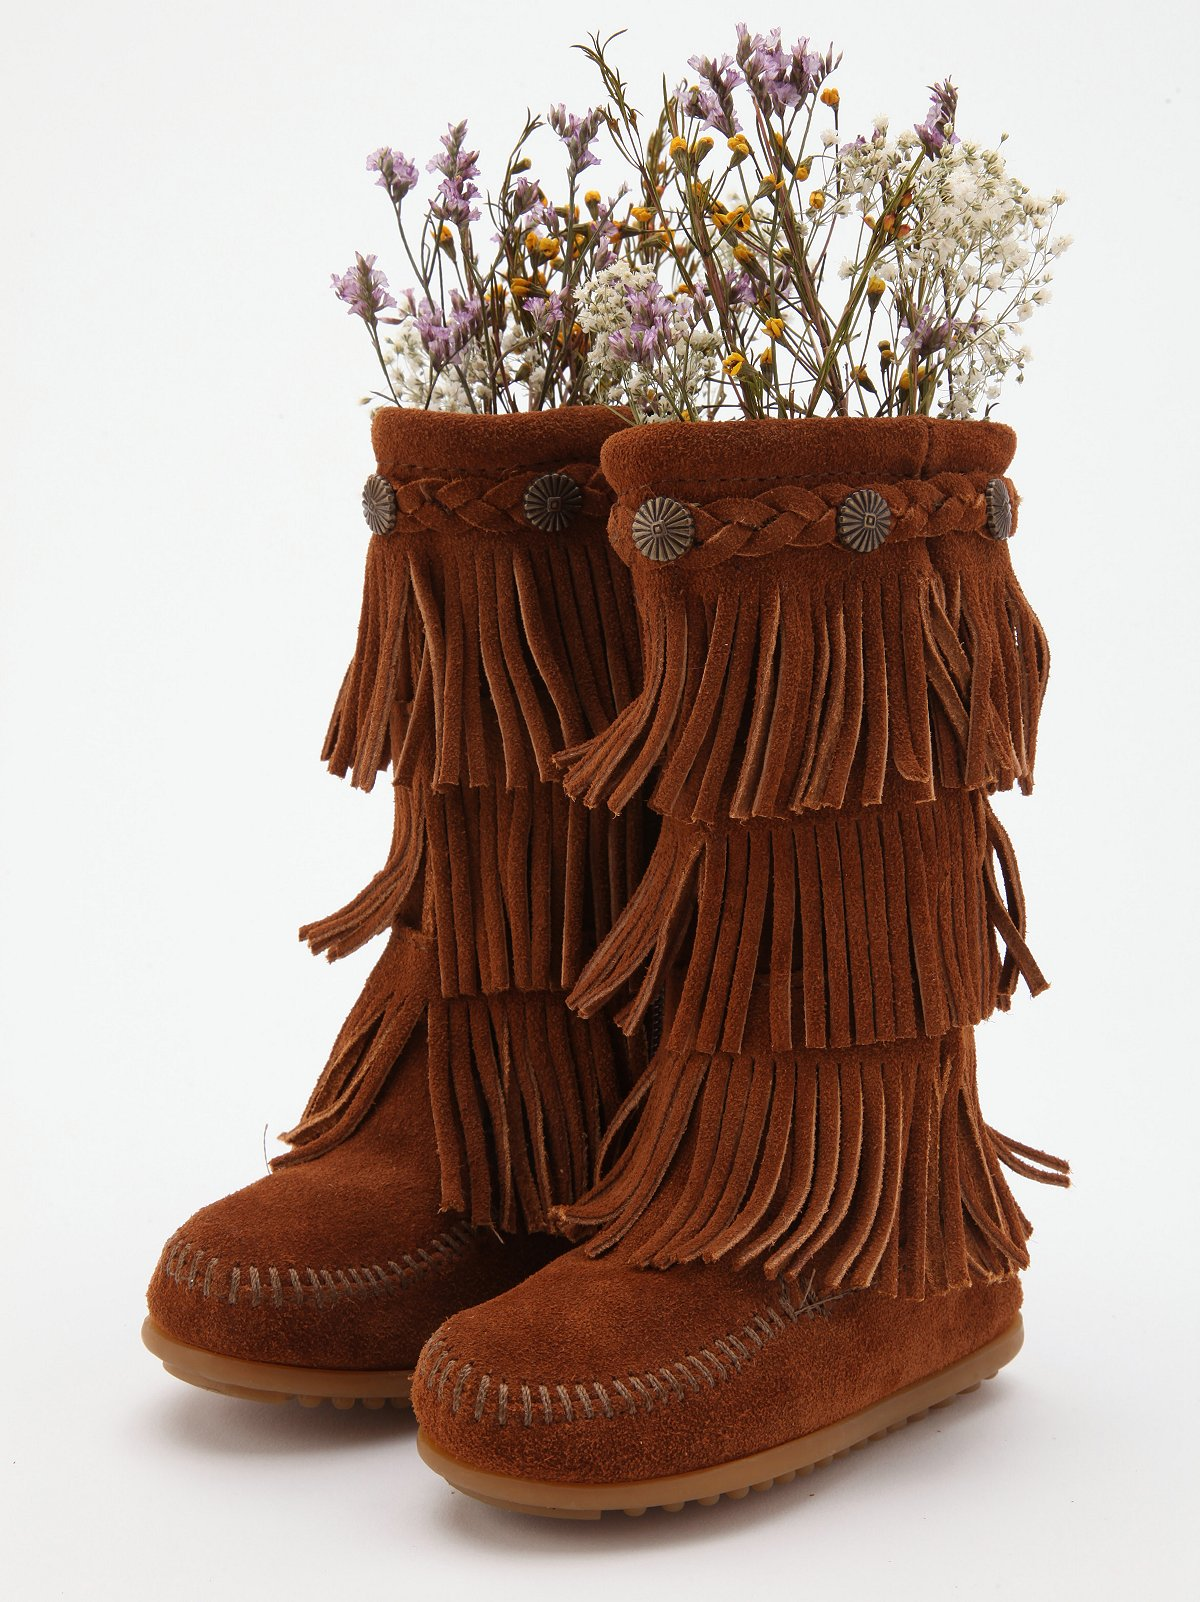 Wee People 3 Layer Fringe Bootie